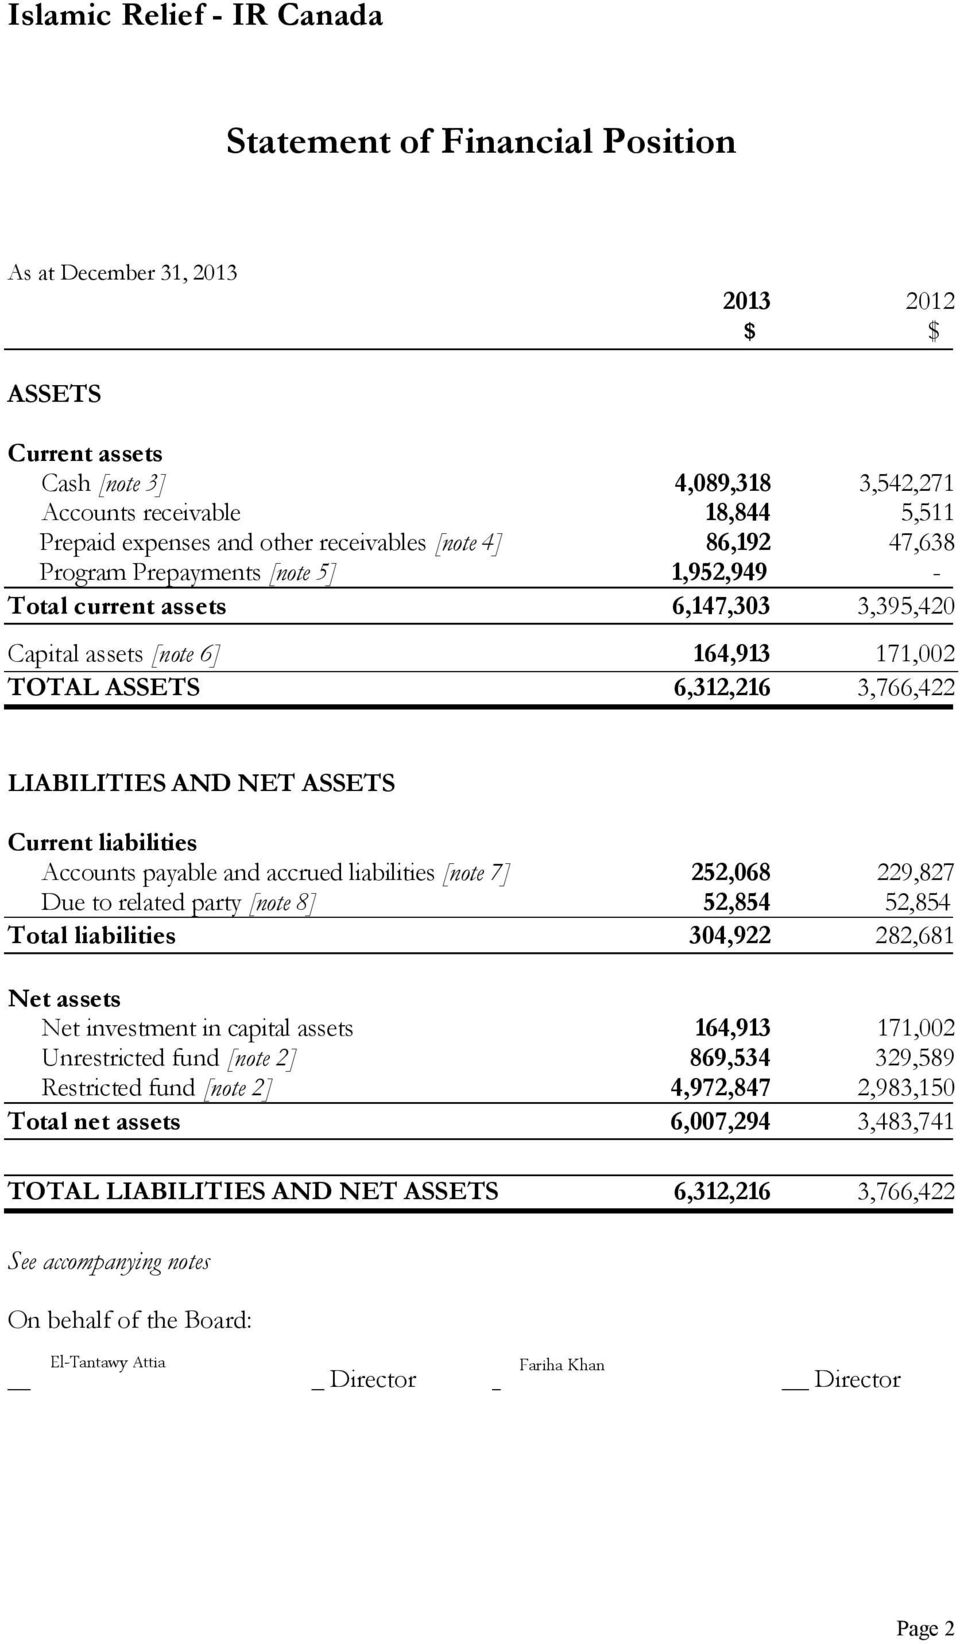 liabilities Accounts payable and accrued liabilities [note 7] 252,068 229,827 Due to related party [note 8] 52,854 52,854 Total liabilities 304,922 282,681 Net assets Net investment in capital assets